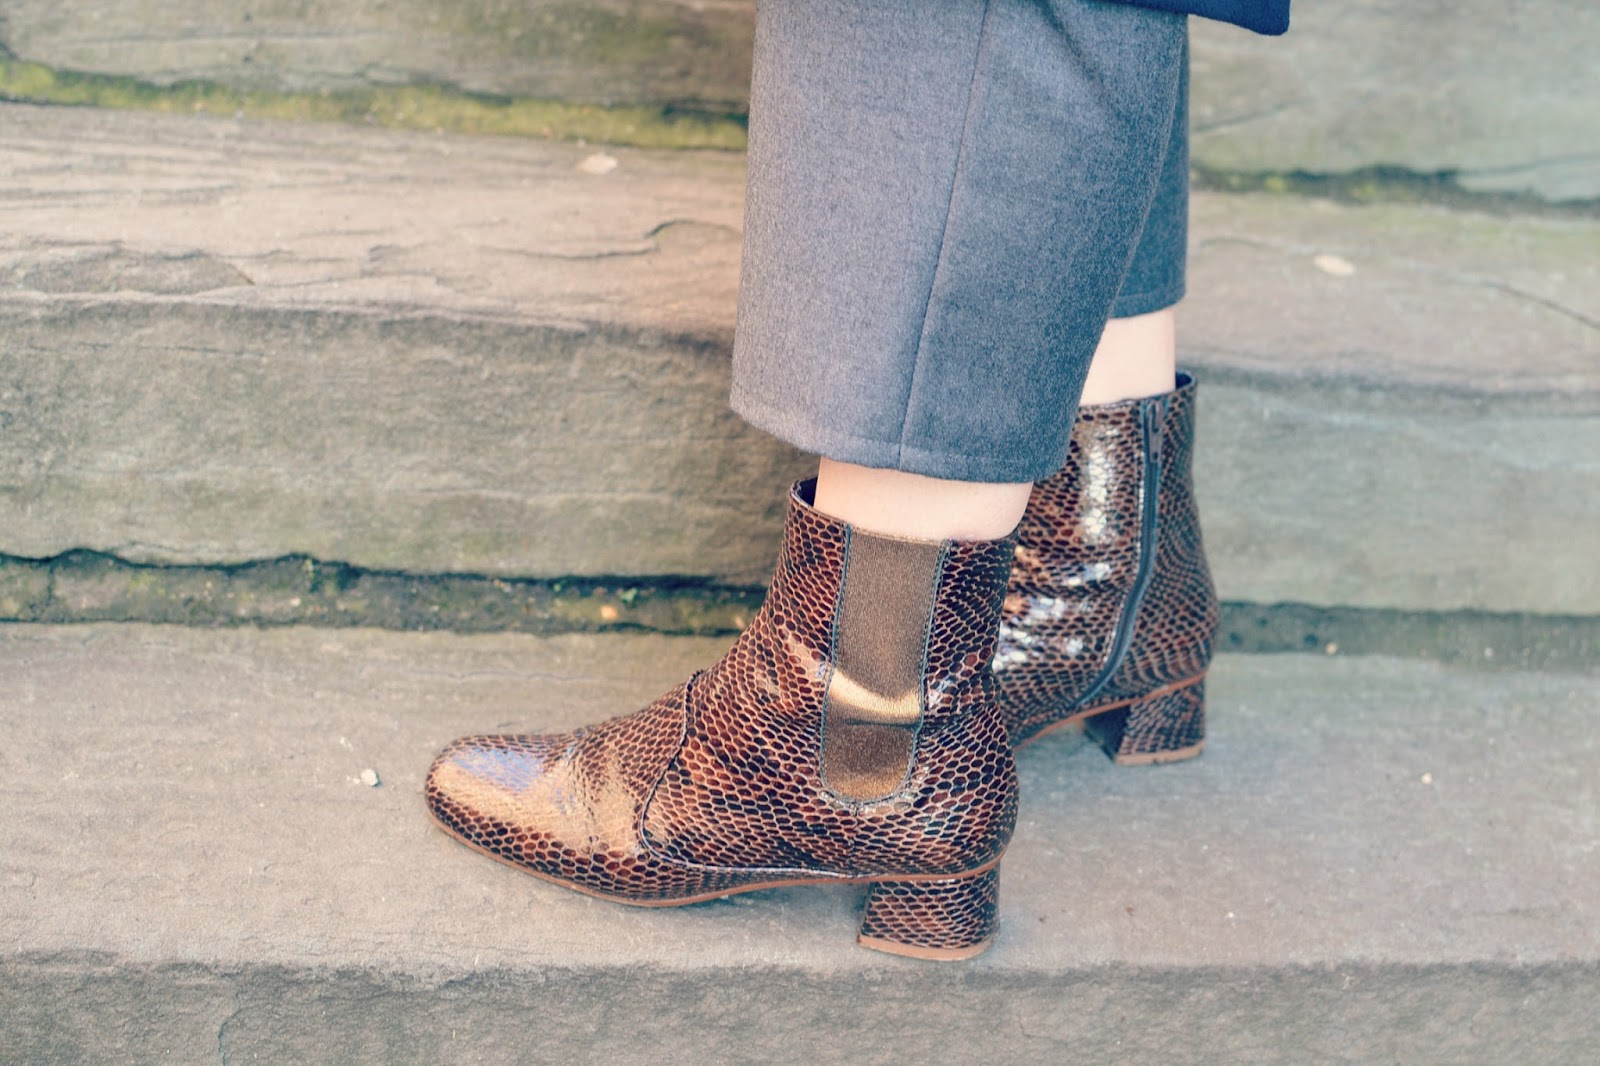 Finery Elmworth snakeskin boots, fashion blogger